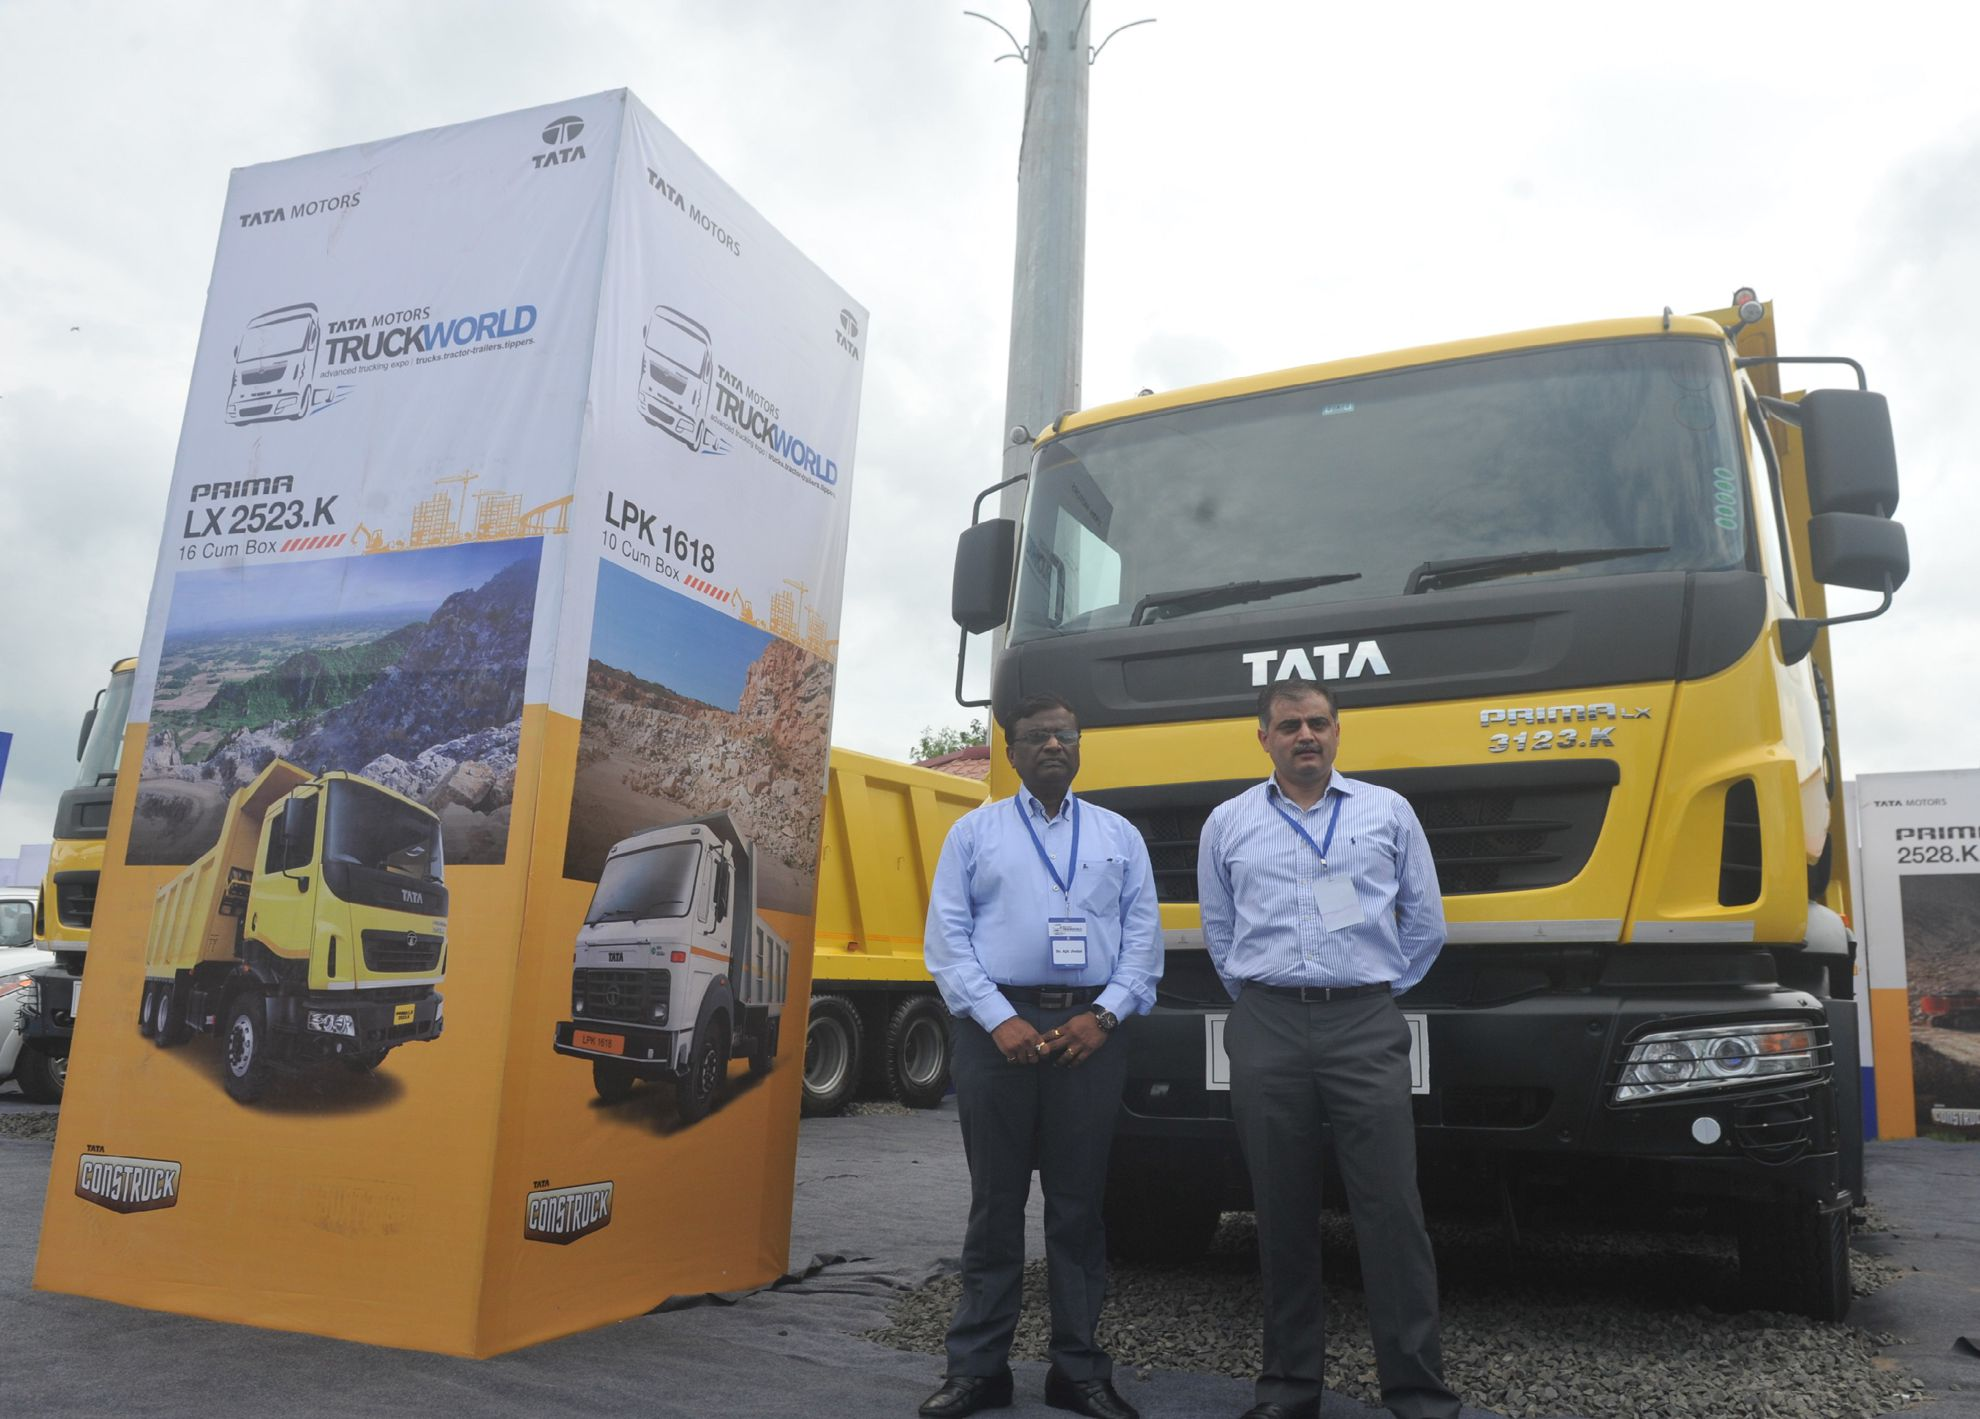 Furthering initiatives for an enhanced customer purchase experience for its commercial vehicle offerings, Tata Motors hosted its 'TRUCK WORLD: ADVANCED ...